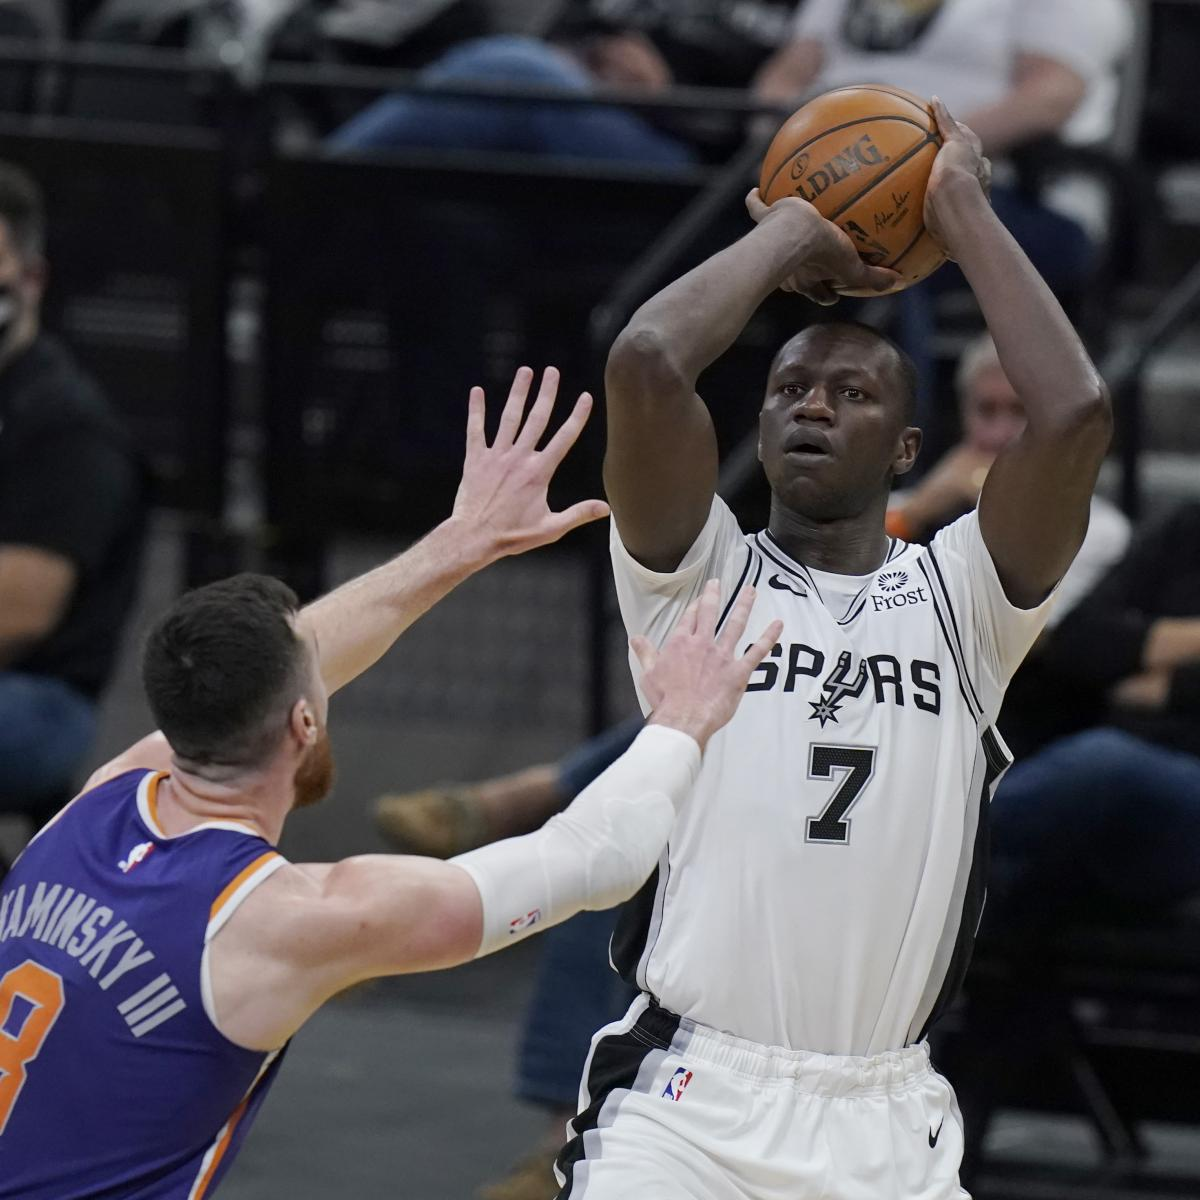 Gorgui Dieng, Hawks Reportedly Conform to 1-365 days, $4M Contract in Free Company